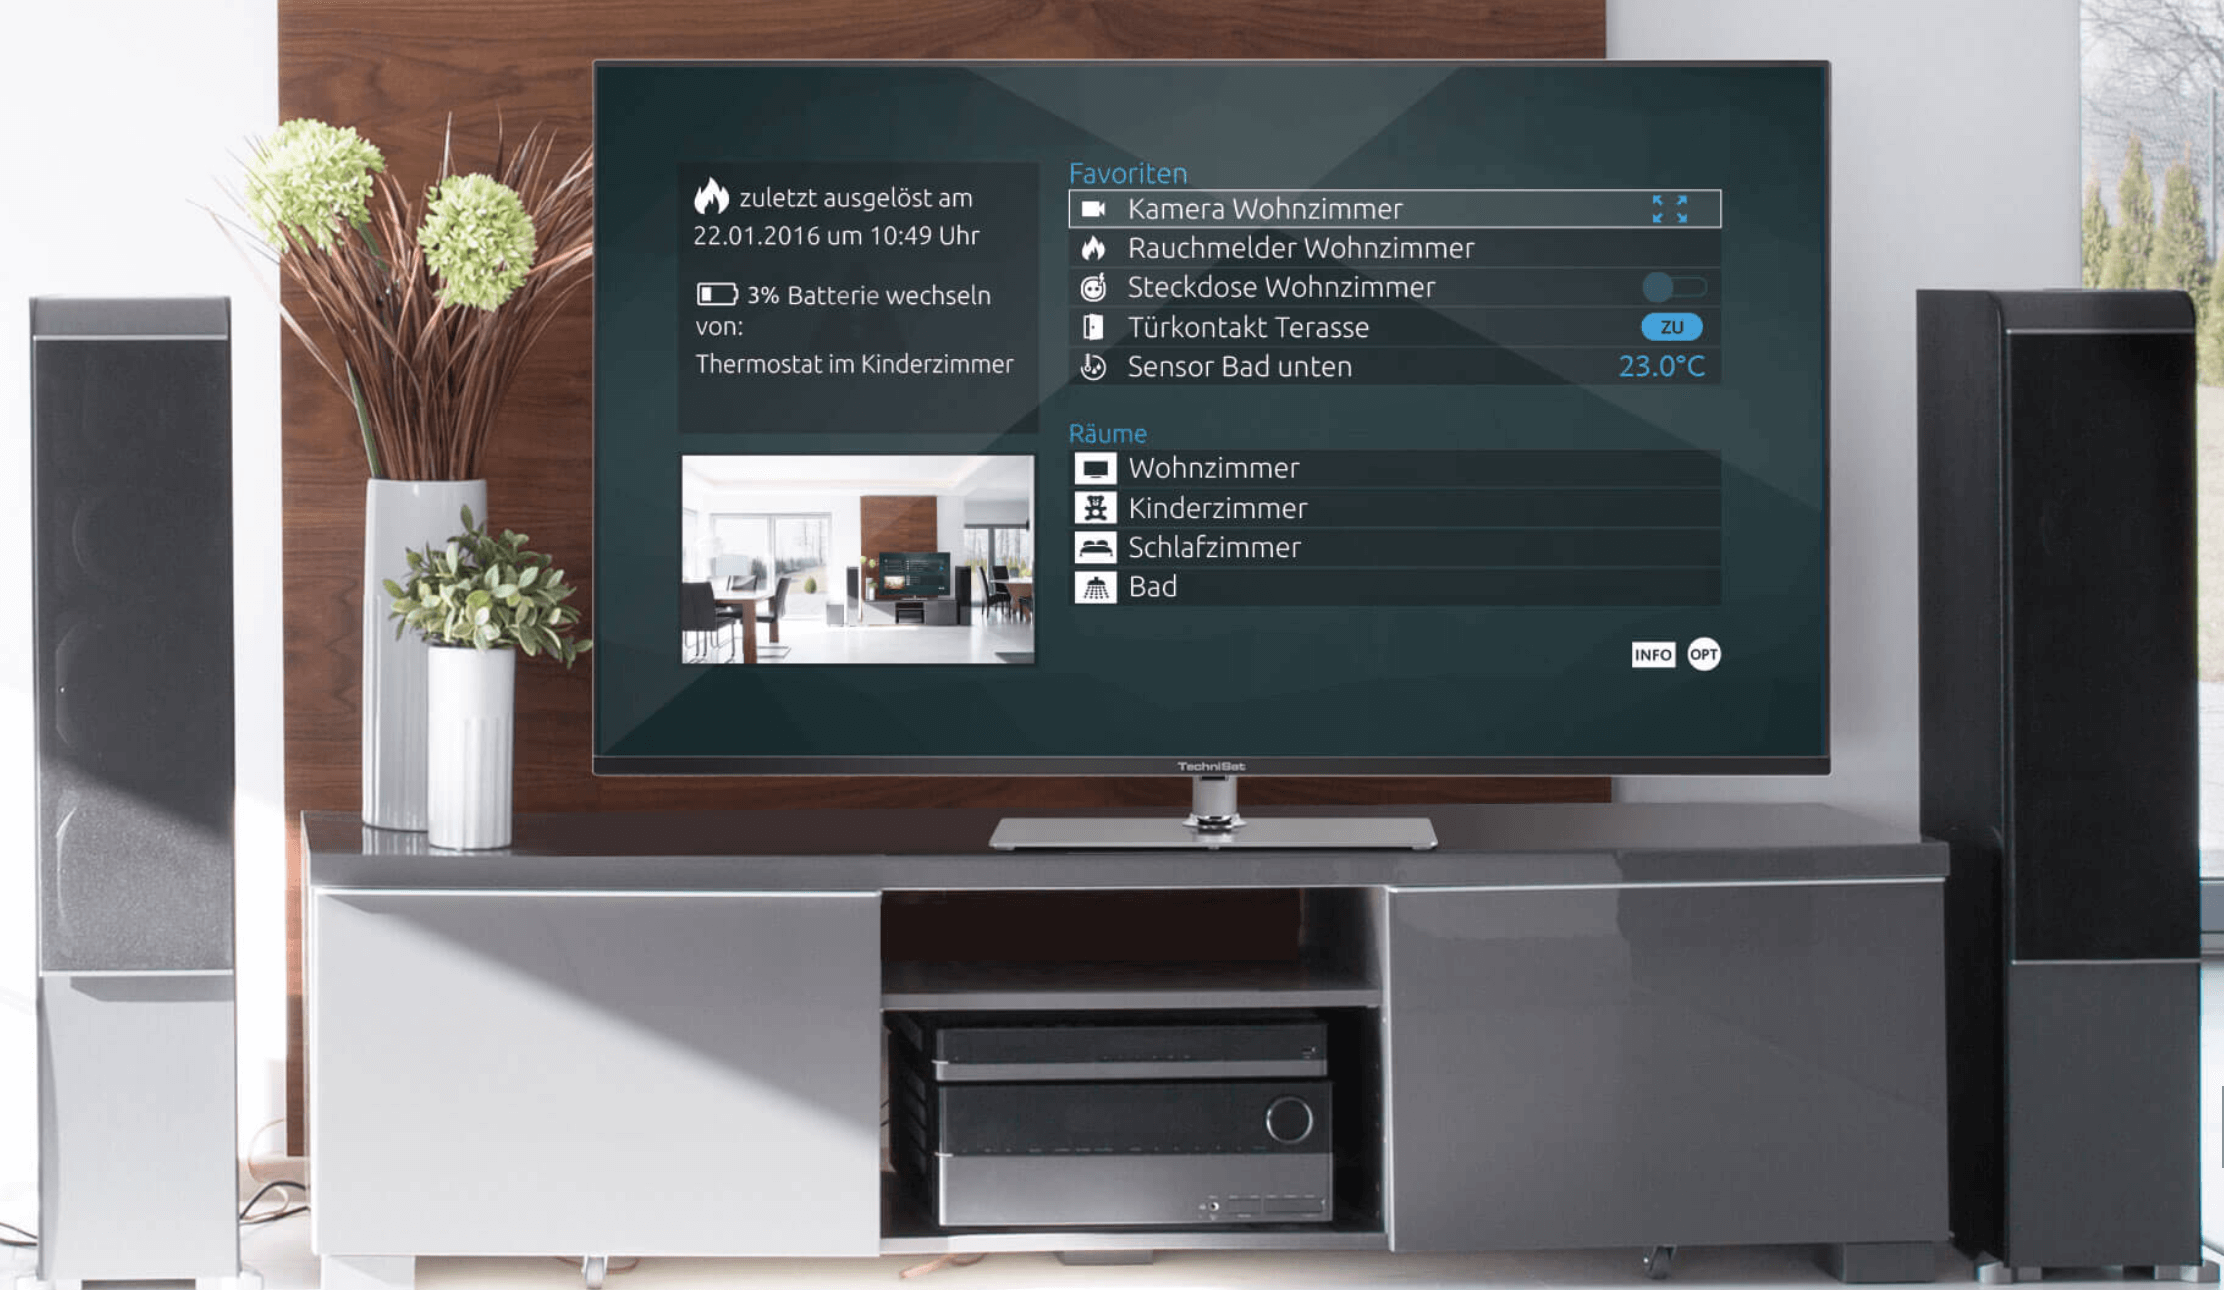 Technisat Smart Home auf Smart TV